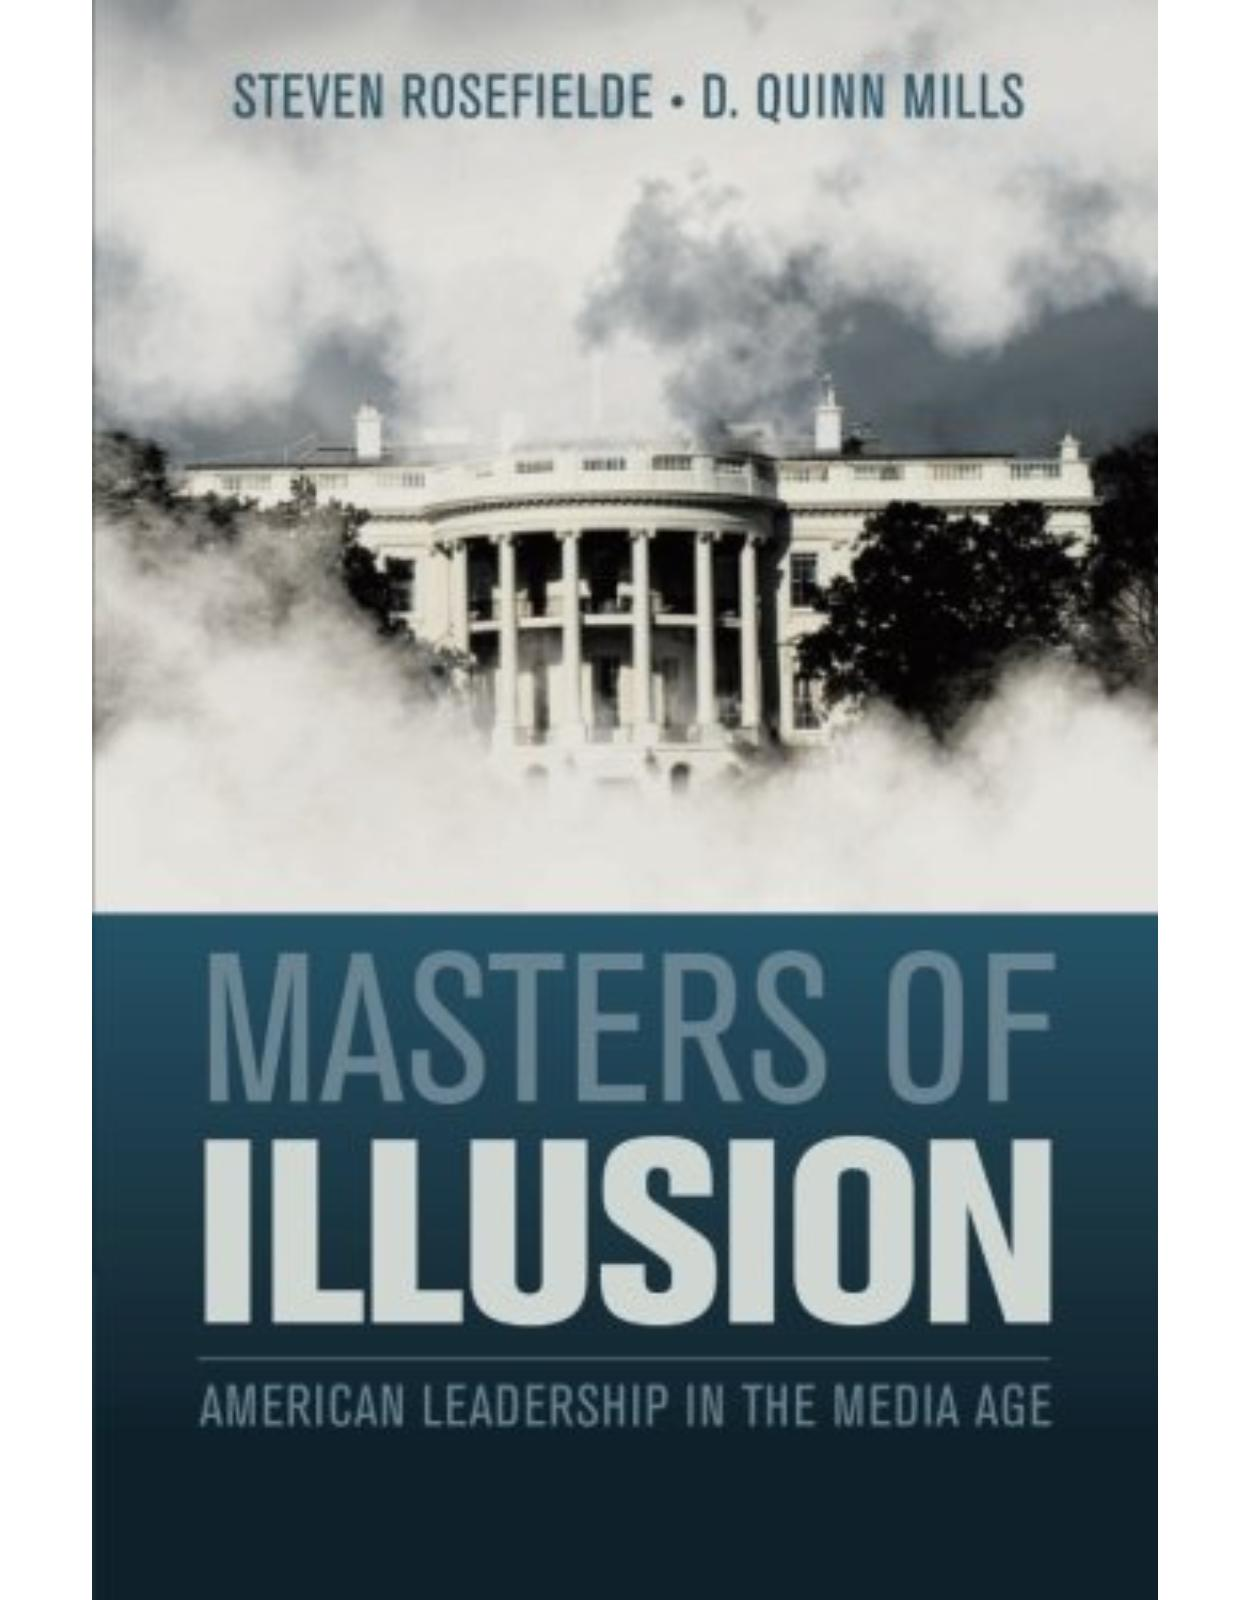 Masters of Illusion: American Leadership in the Media Age